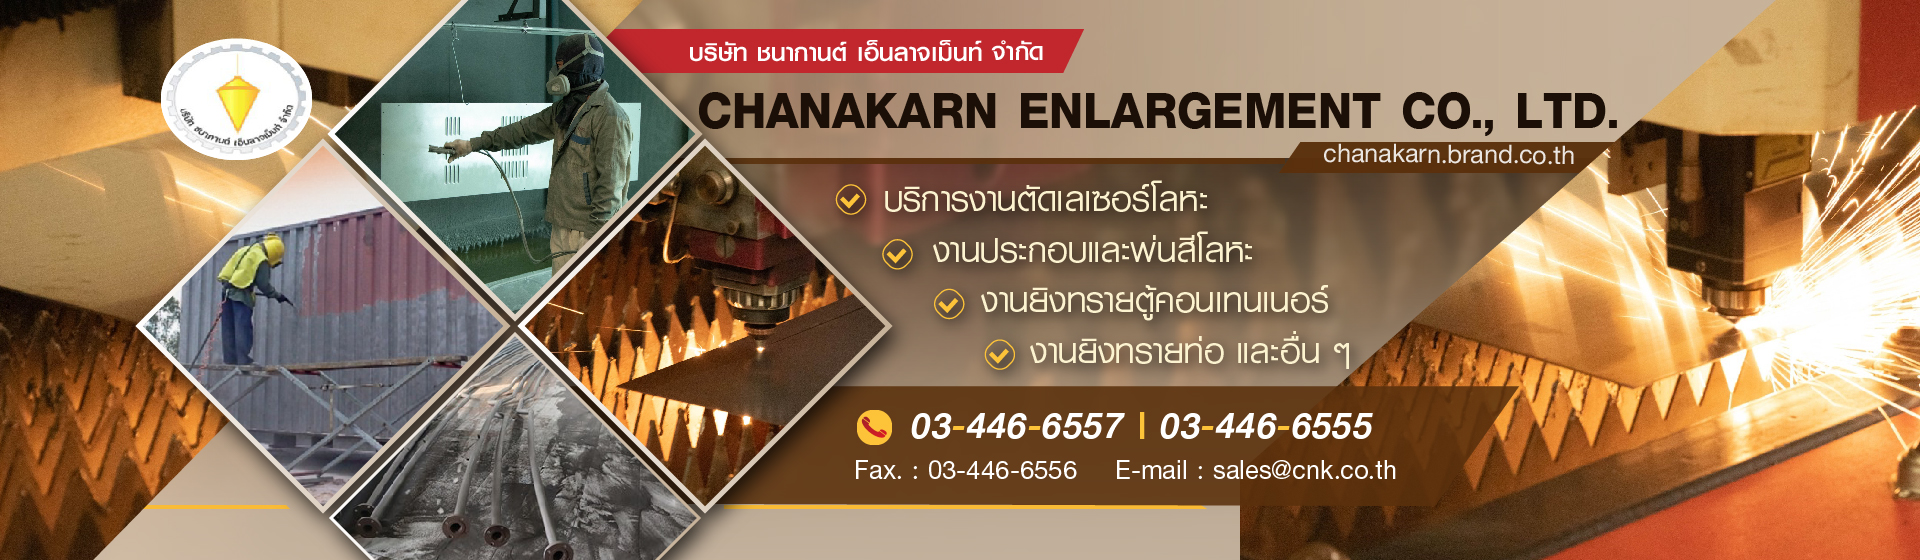 https://www.chanakarn-enlargement.com/TH/Home